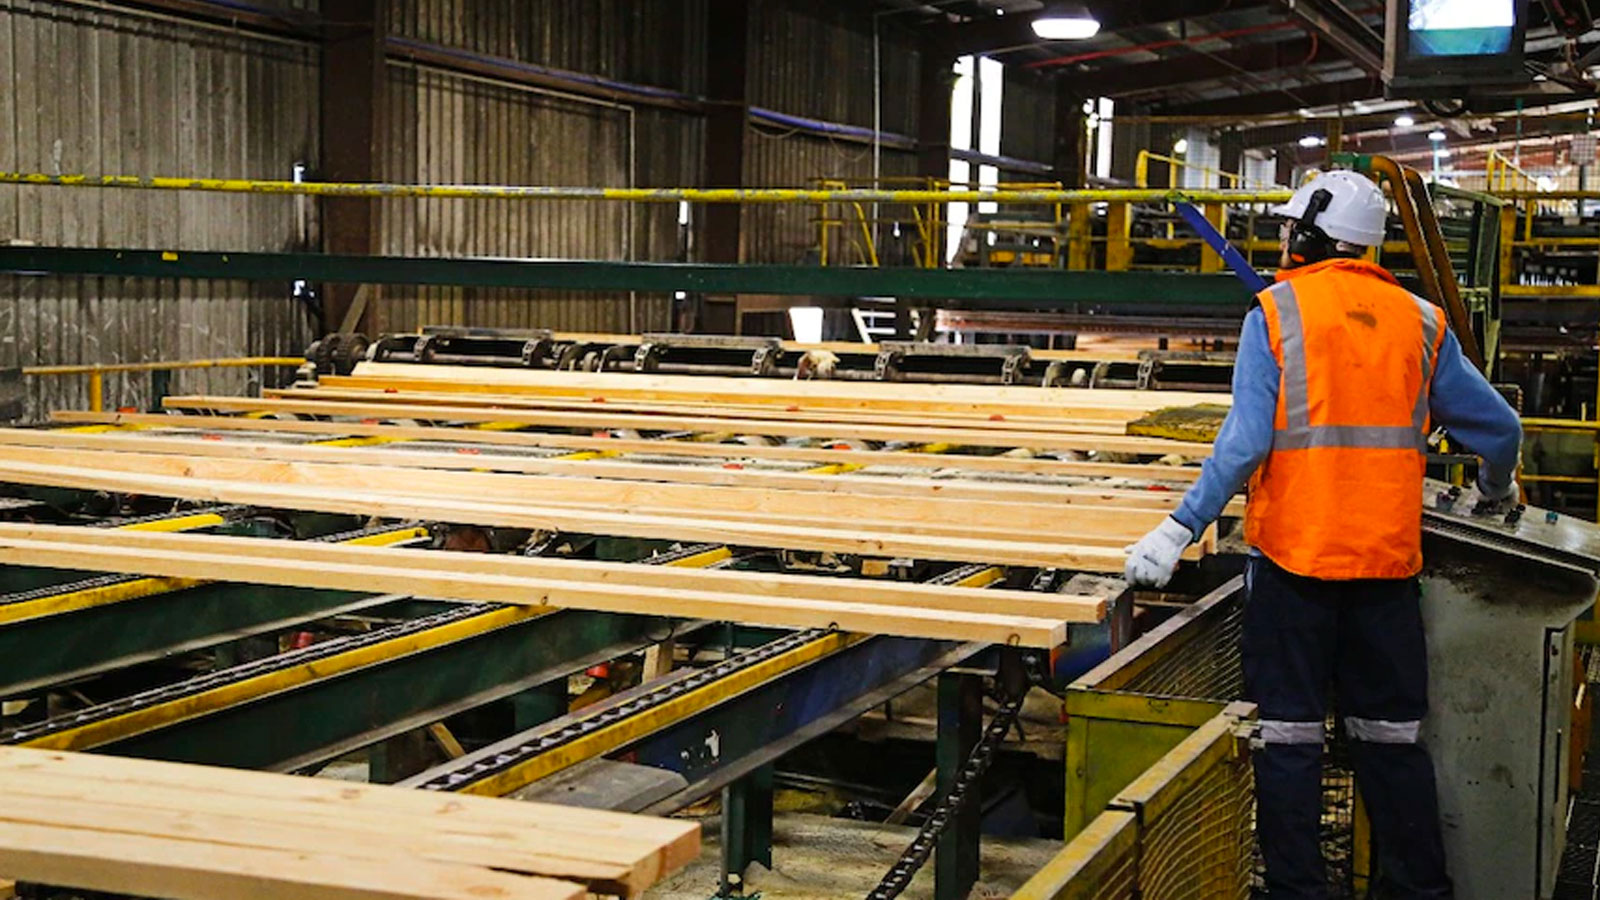 ▲ There has been a reduction in timber imported from overseas due to demand and disruption to shipping.